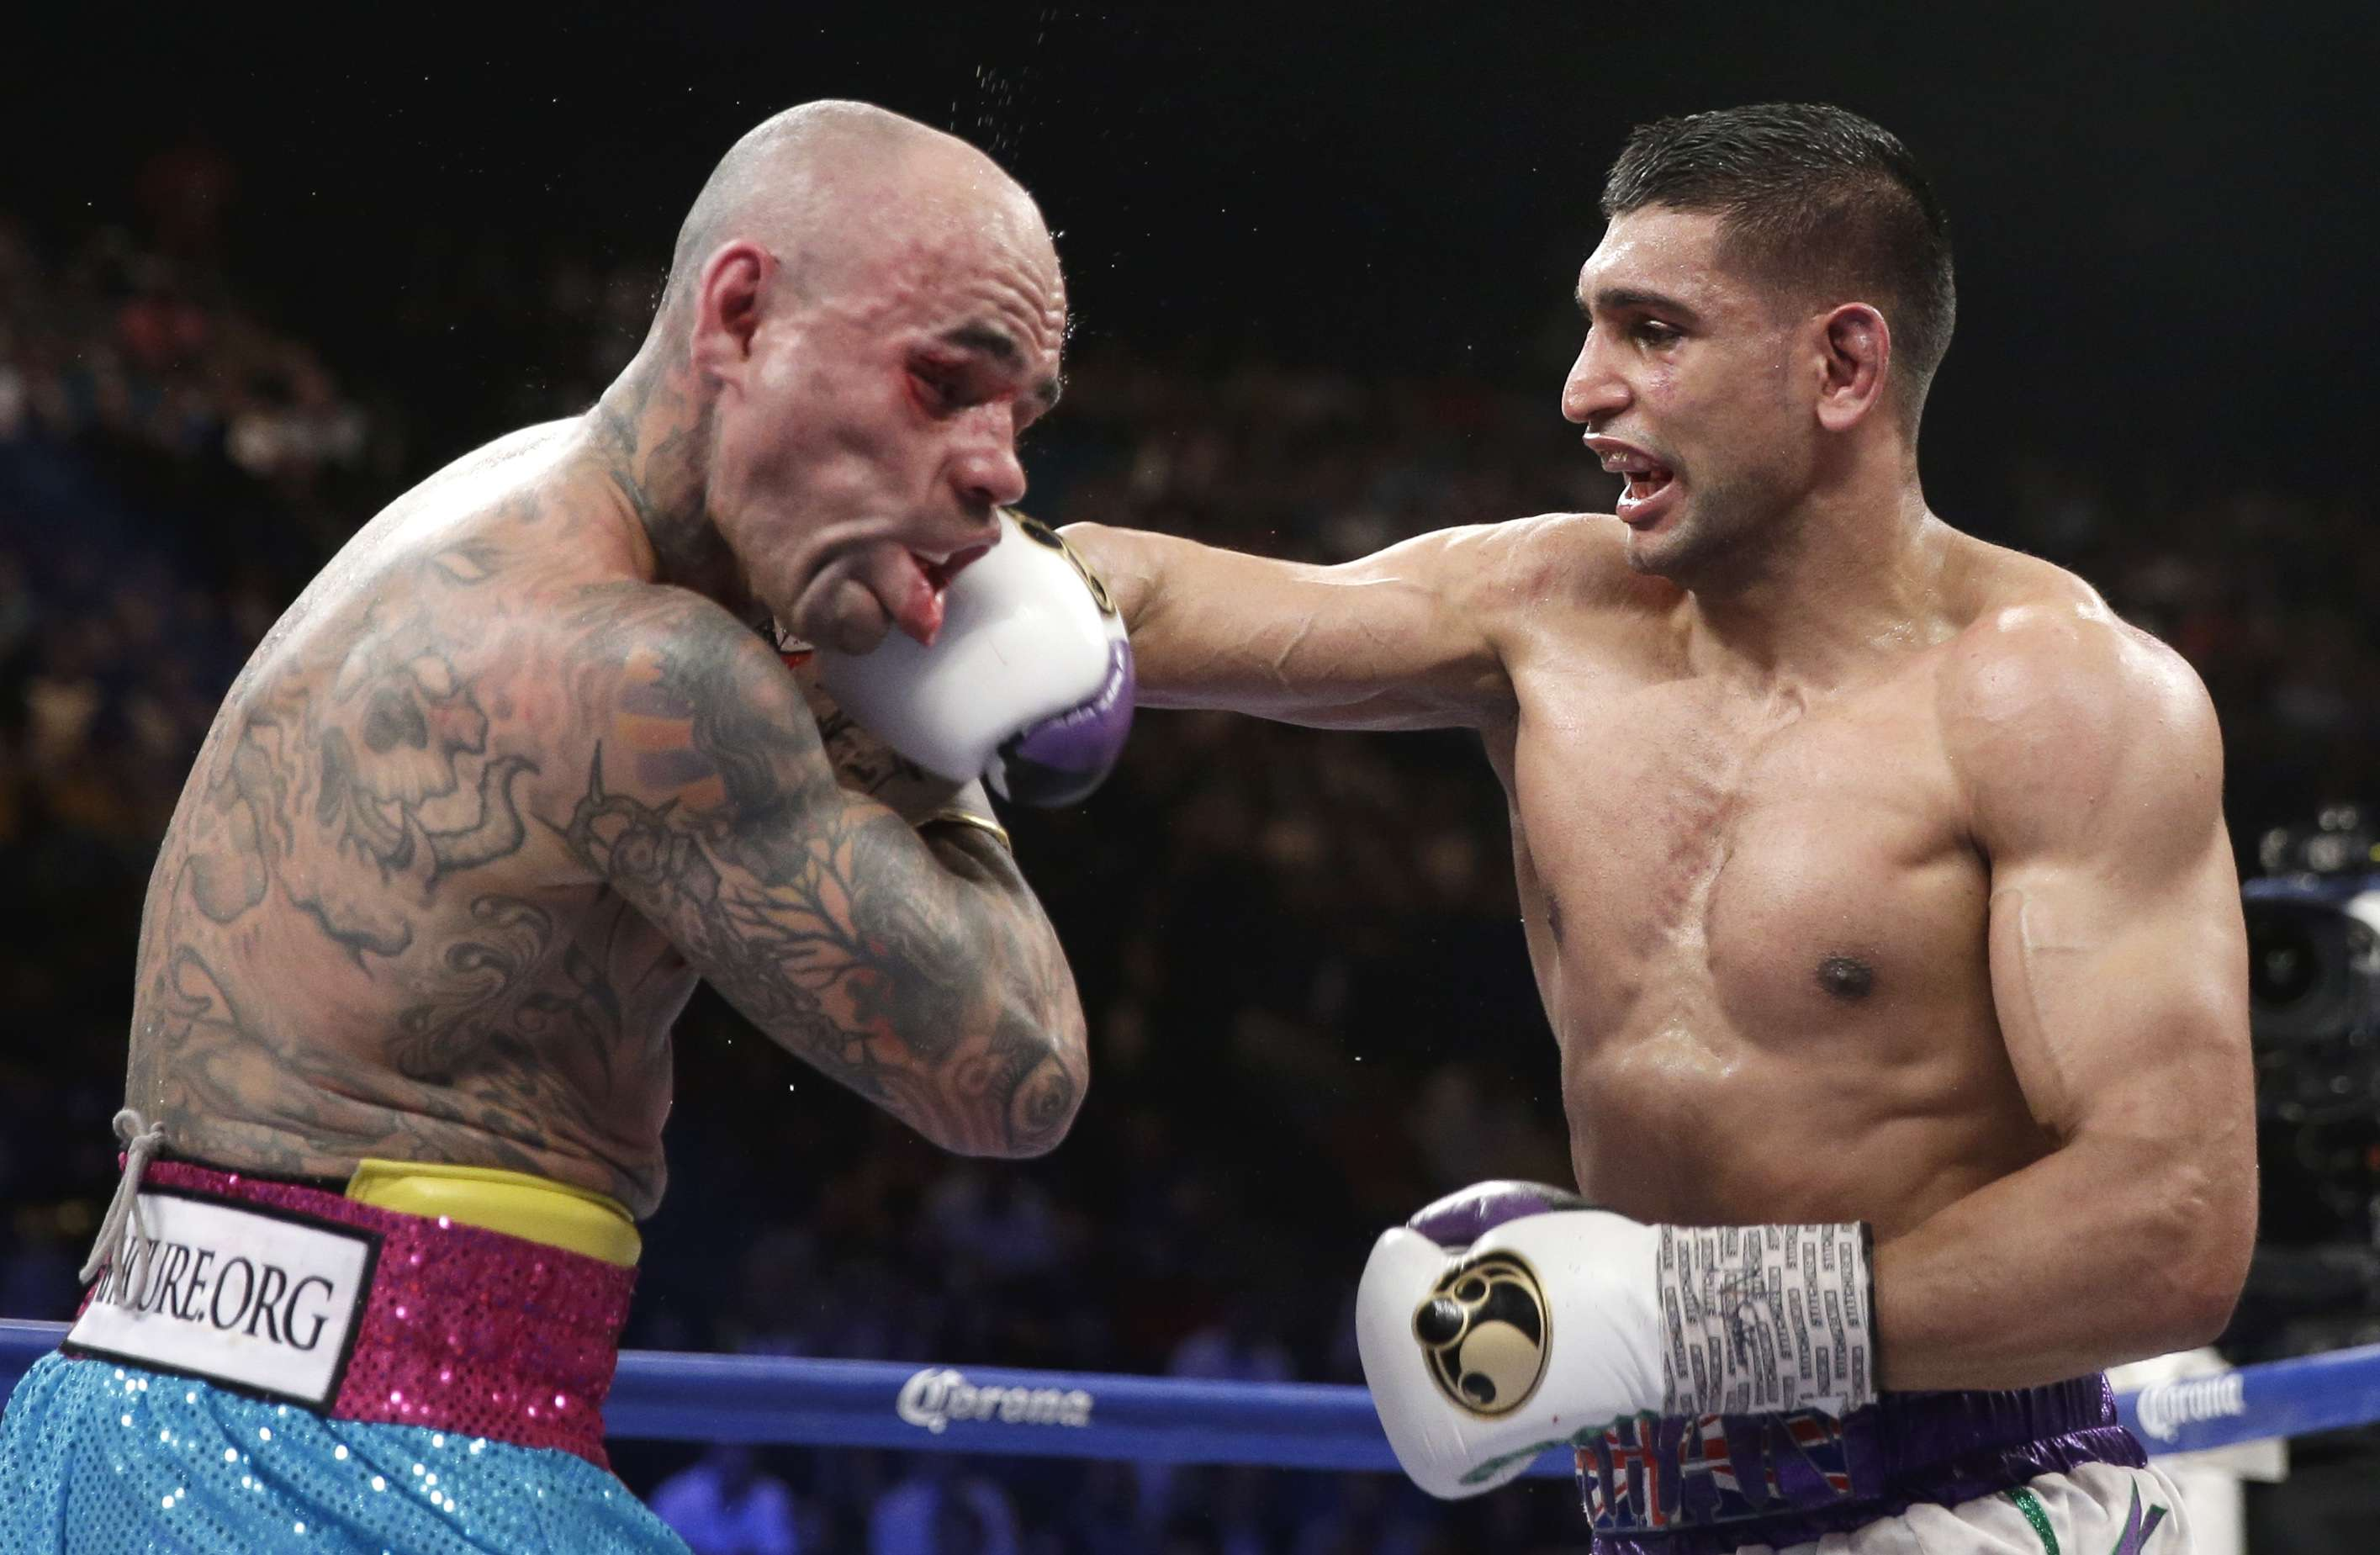 England's Amir Khan, right, connects with a hard right to the head of Luis Collazo in their silver welterweight title boxing fight Saturday, May 3, 2014, in Las Vegas. (AP Photo/Isaac Brekken) Foto: AP en español